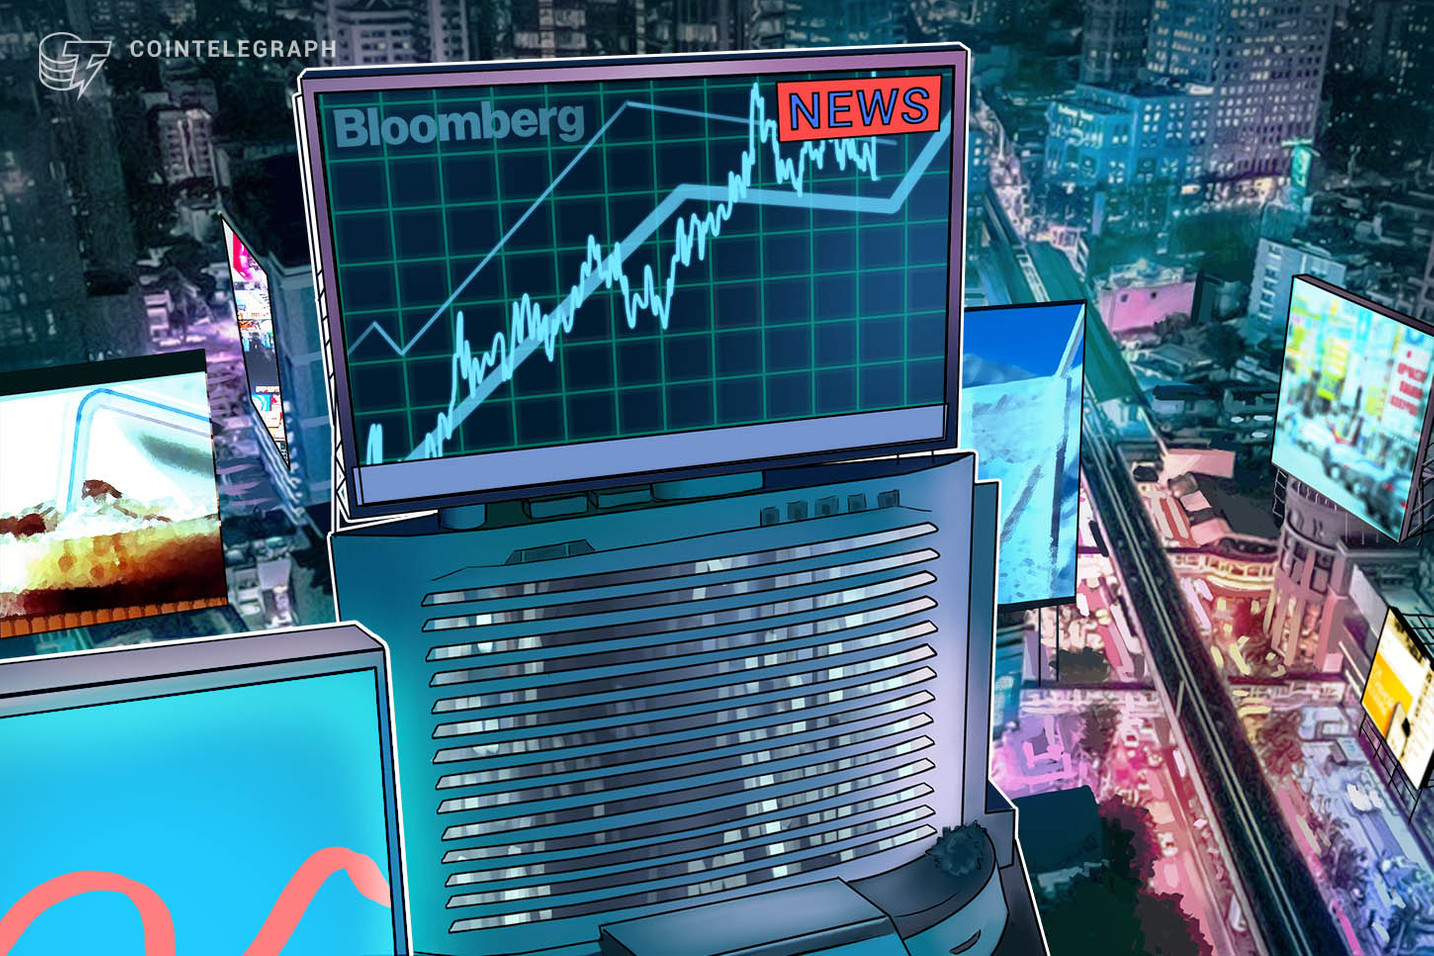 Bloomberg: More Than $500 Mln Tether Issued in August Is Not Impacting Crypto Markets